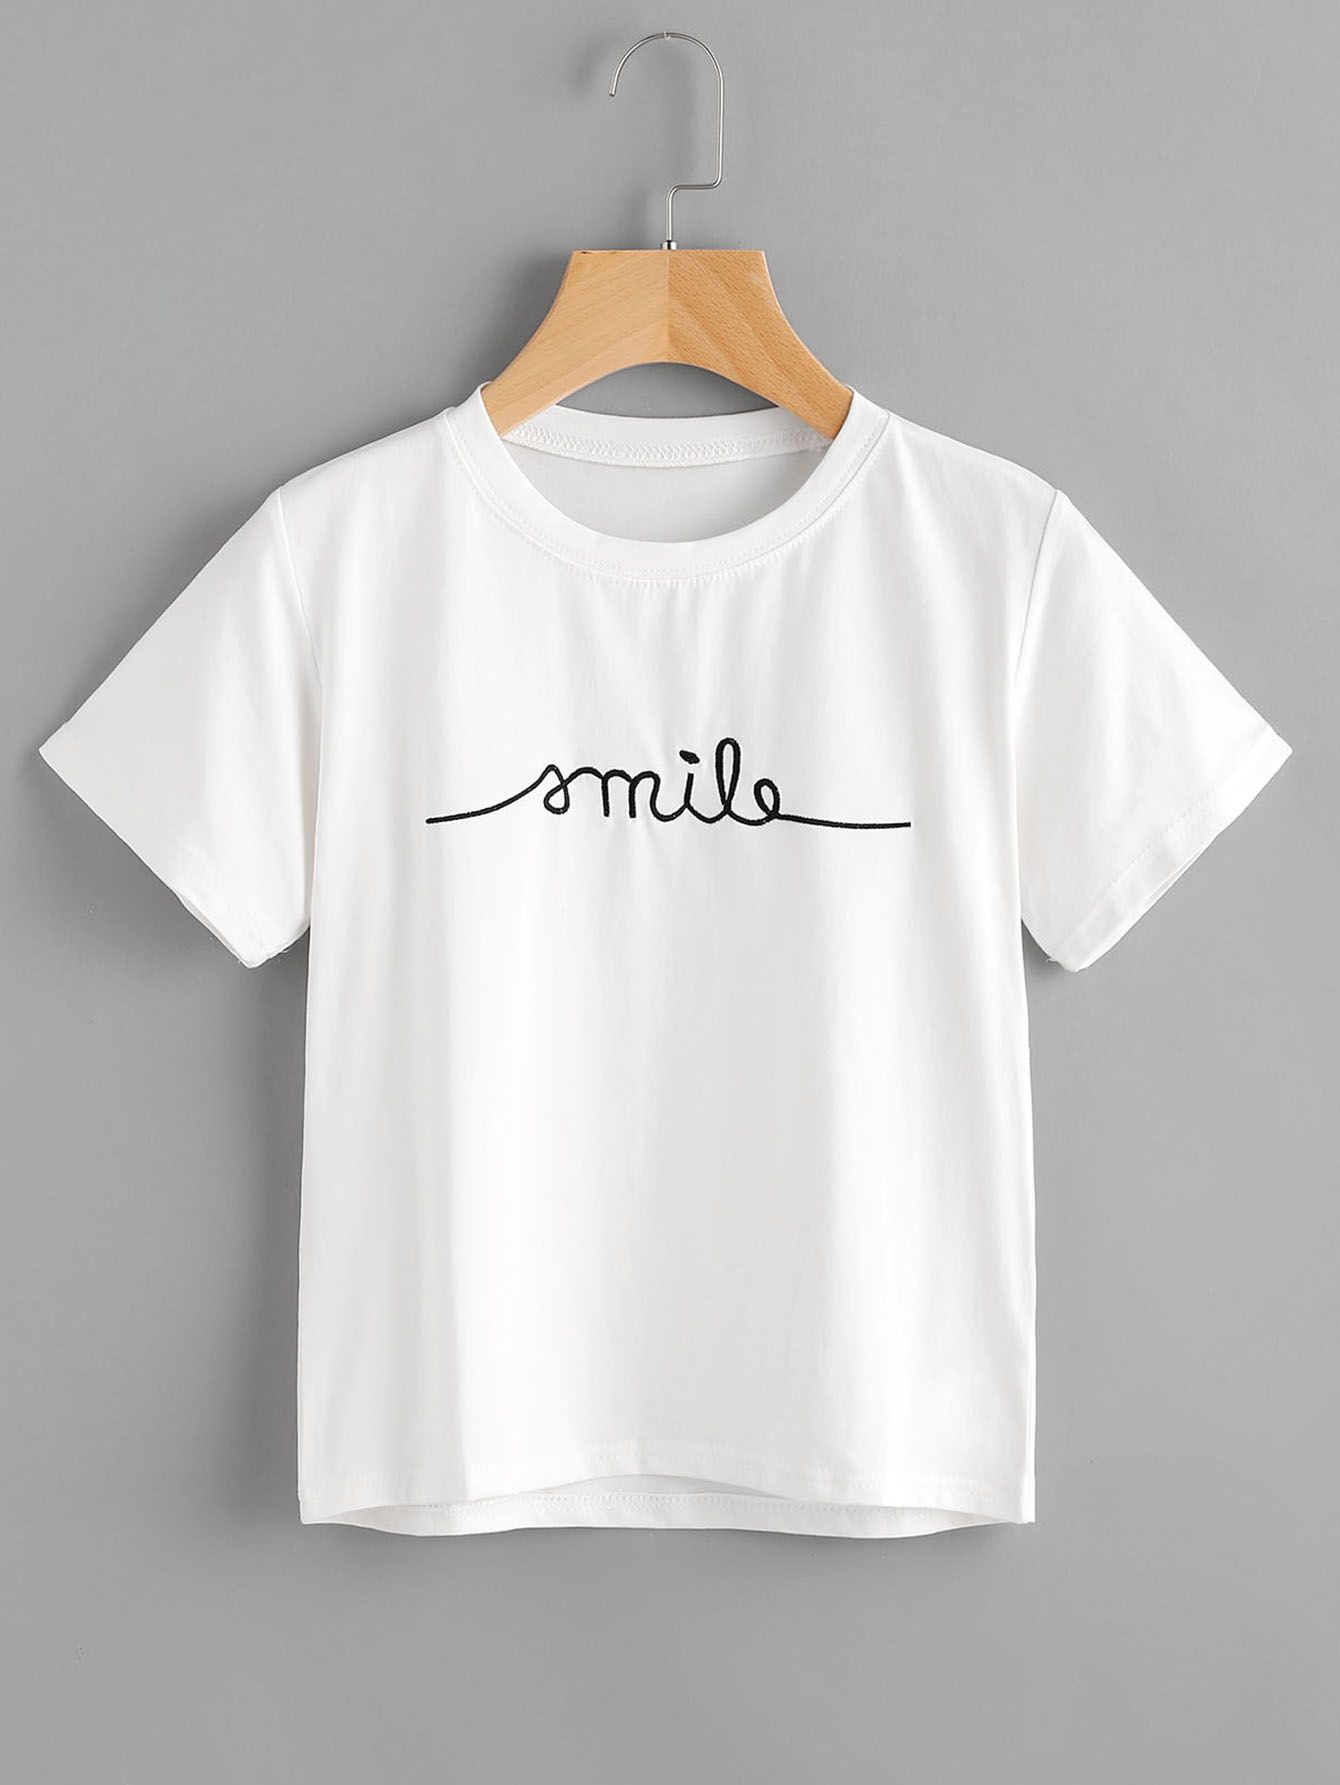 70220e70f Shop Letter Embroidered Tee online. SheIn offers Letter Embroidered Tee &  more to fit your fashionable needs.